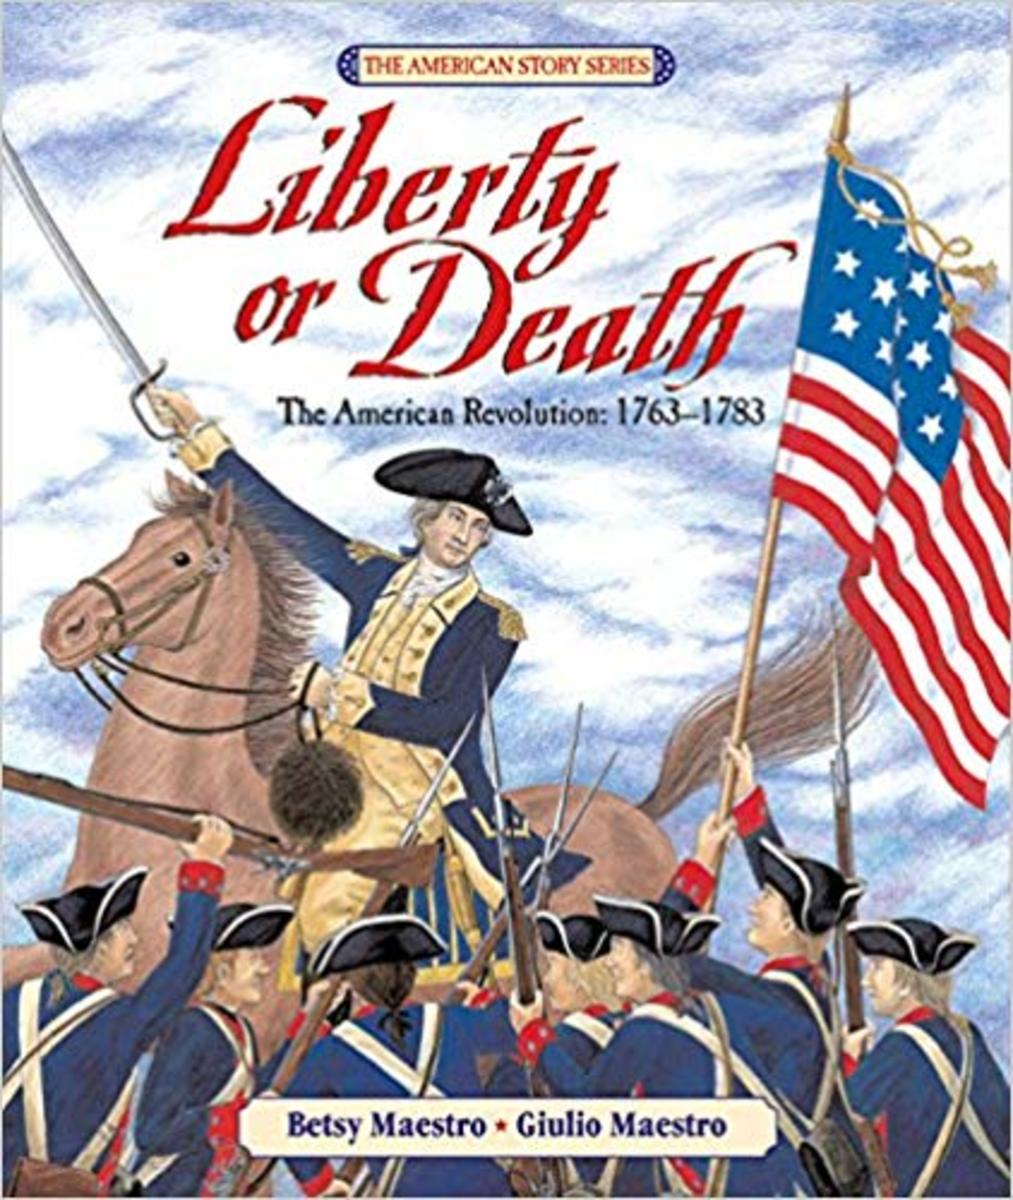 Liberty or Death: The American Revolution: 1763-1783 (American Story) by Betsy Maestro